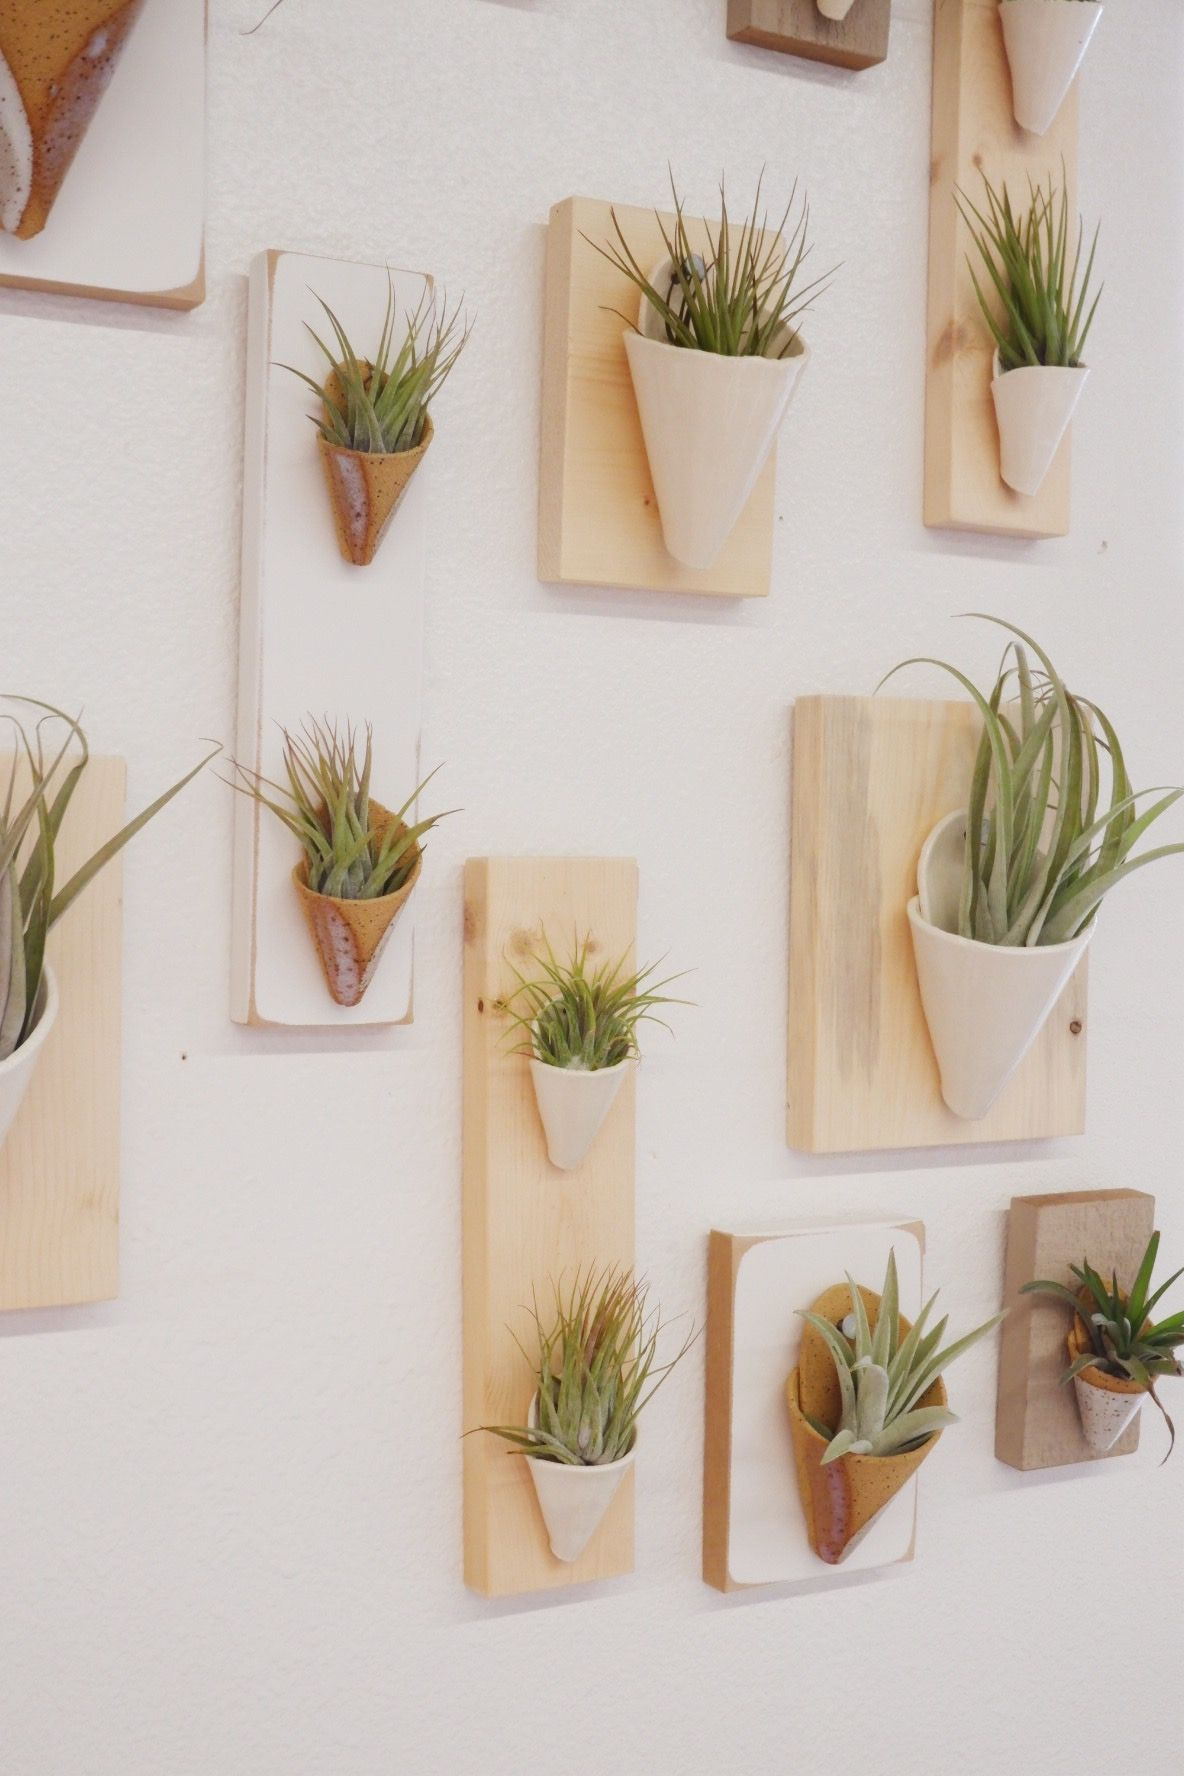 These Make The Perfect Little Home For Your Air Plants Made By Carterandrosepdx From Portland Or Peejoys Giftsforher Livethelittlethings